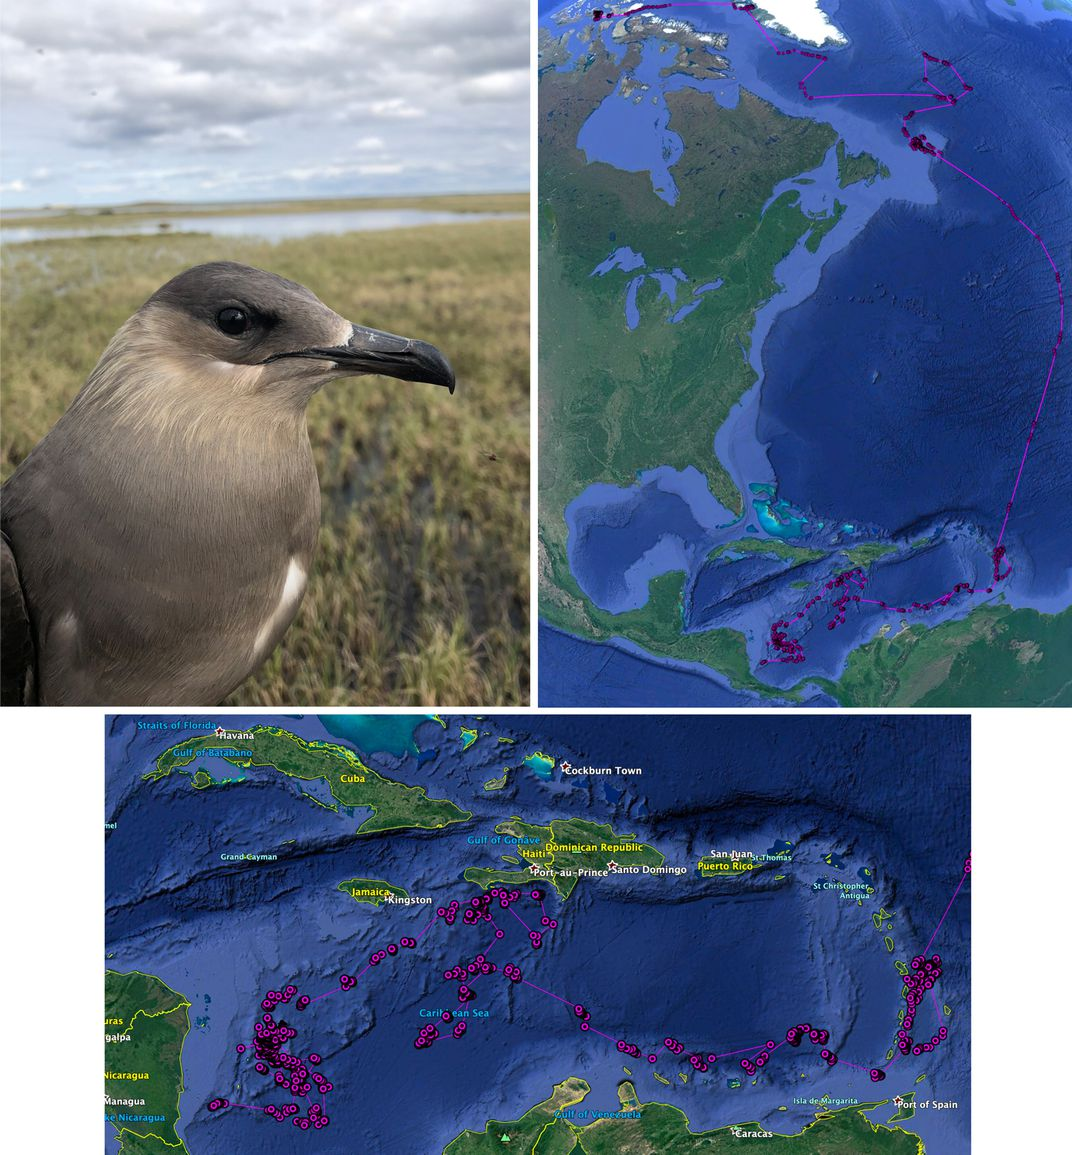 Top left: a seabird called a parasitic jaeger; top right: a map of the jaeger's migratory path from the Arctic to Caribbean; bottom: zoomed-in portion of map of jaeger's movement over Caribbean Sea